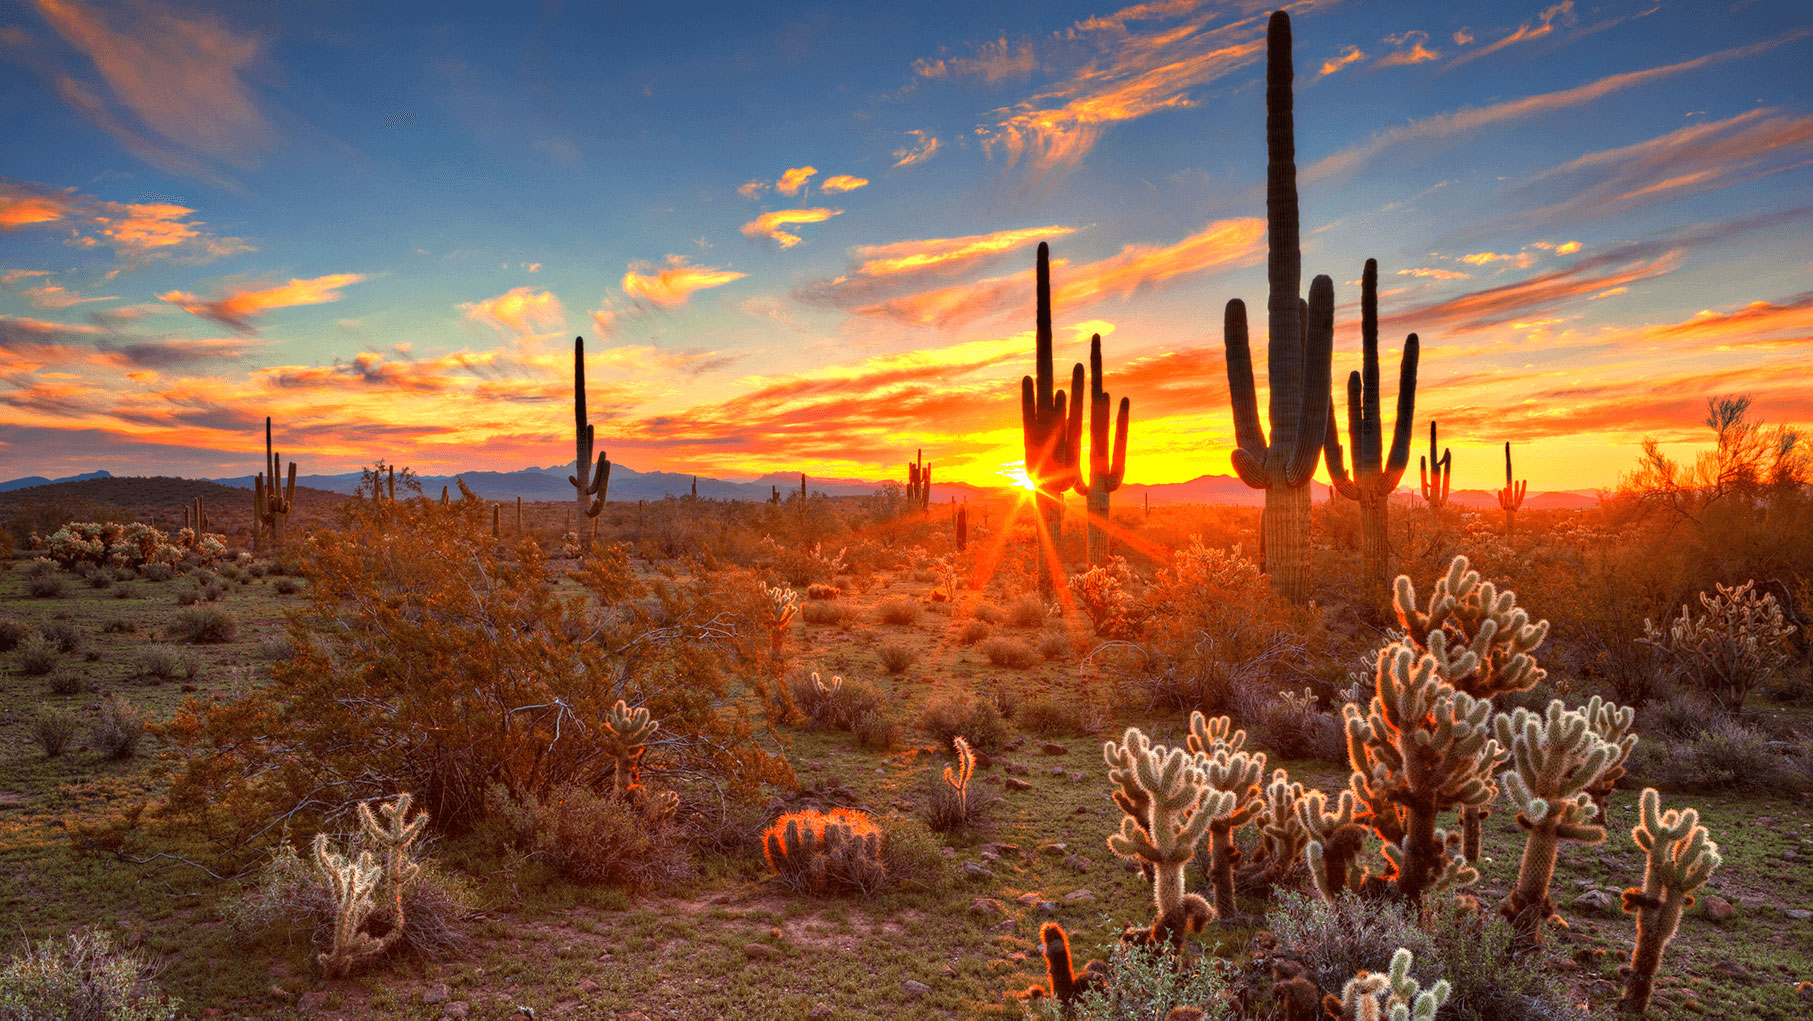 Sunset over desert cacti.